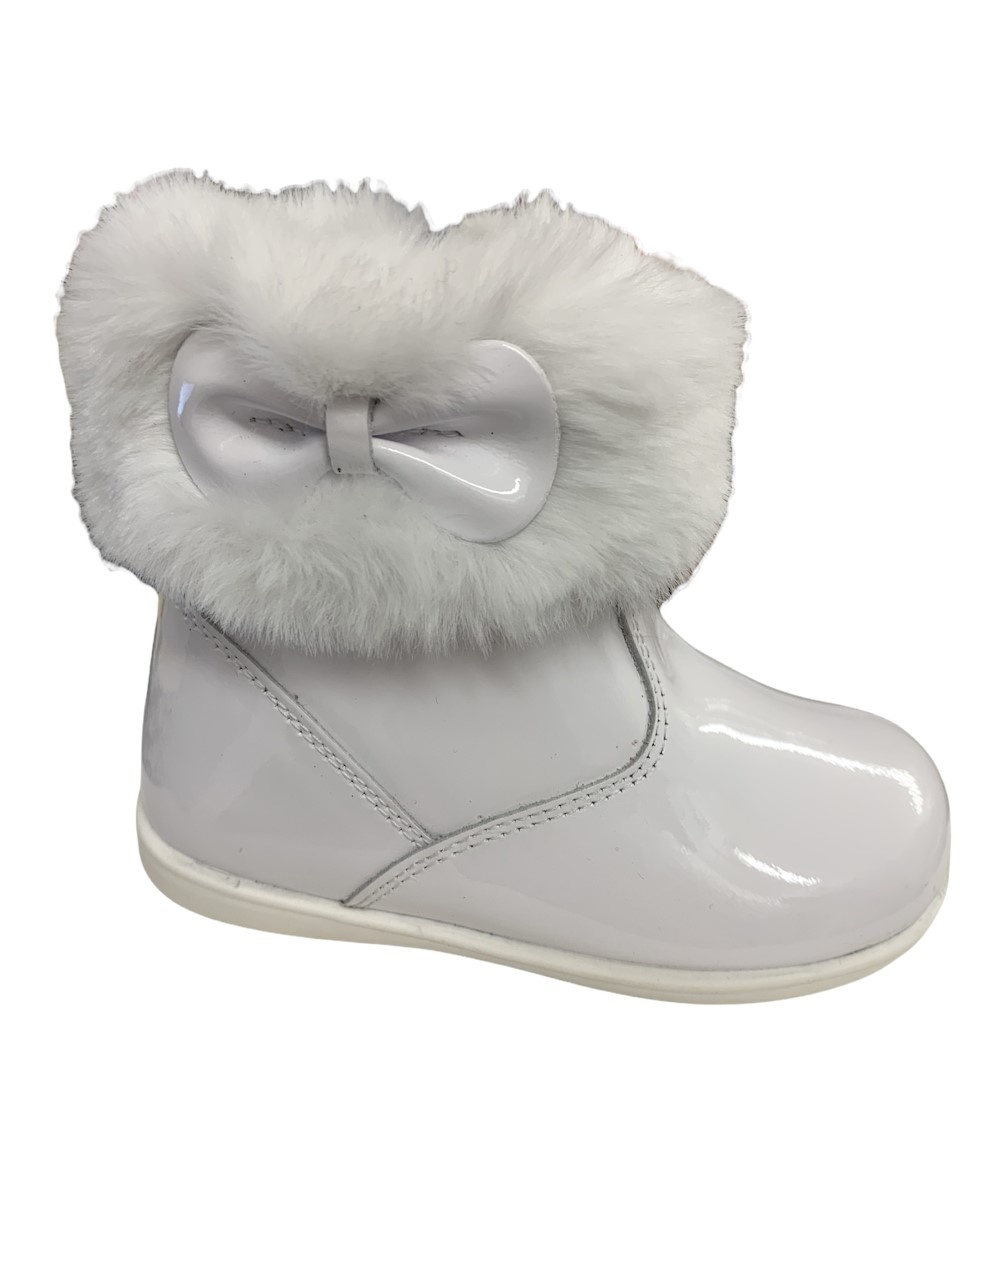 Andanines Andanines White Patent Bow Boot with Fur - 212402